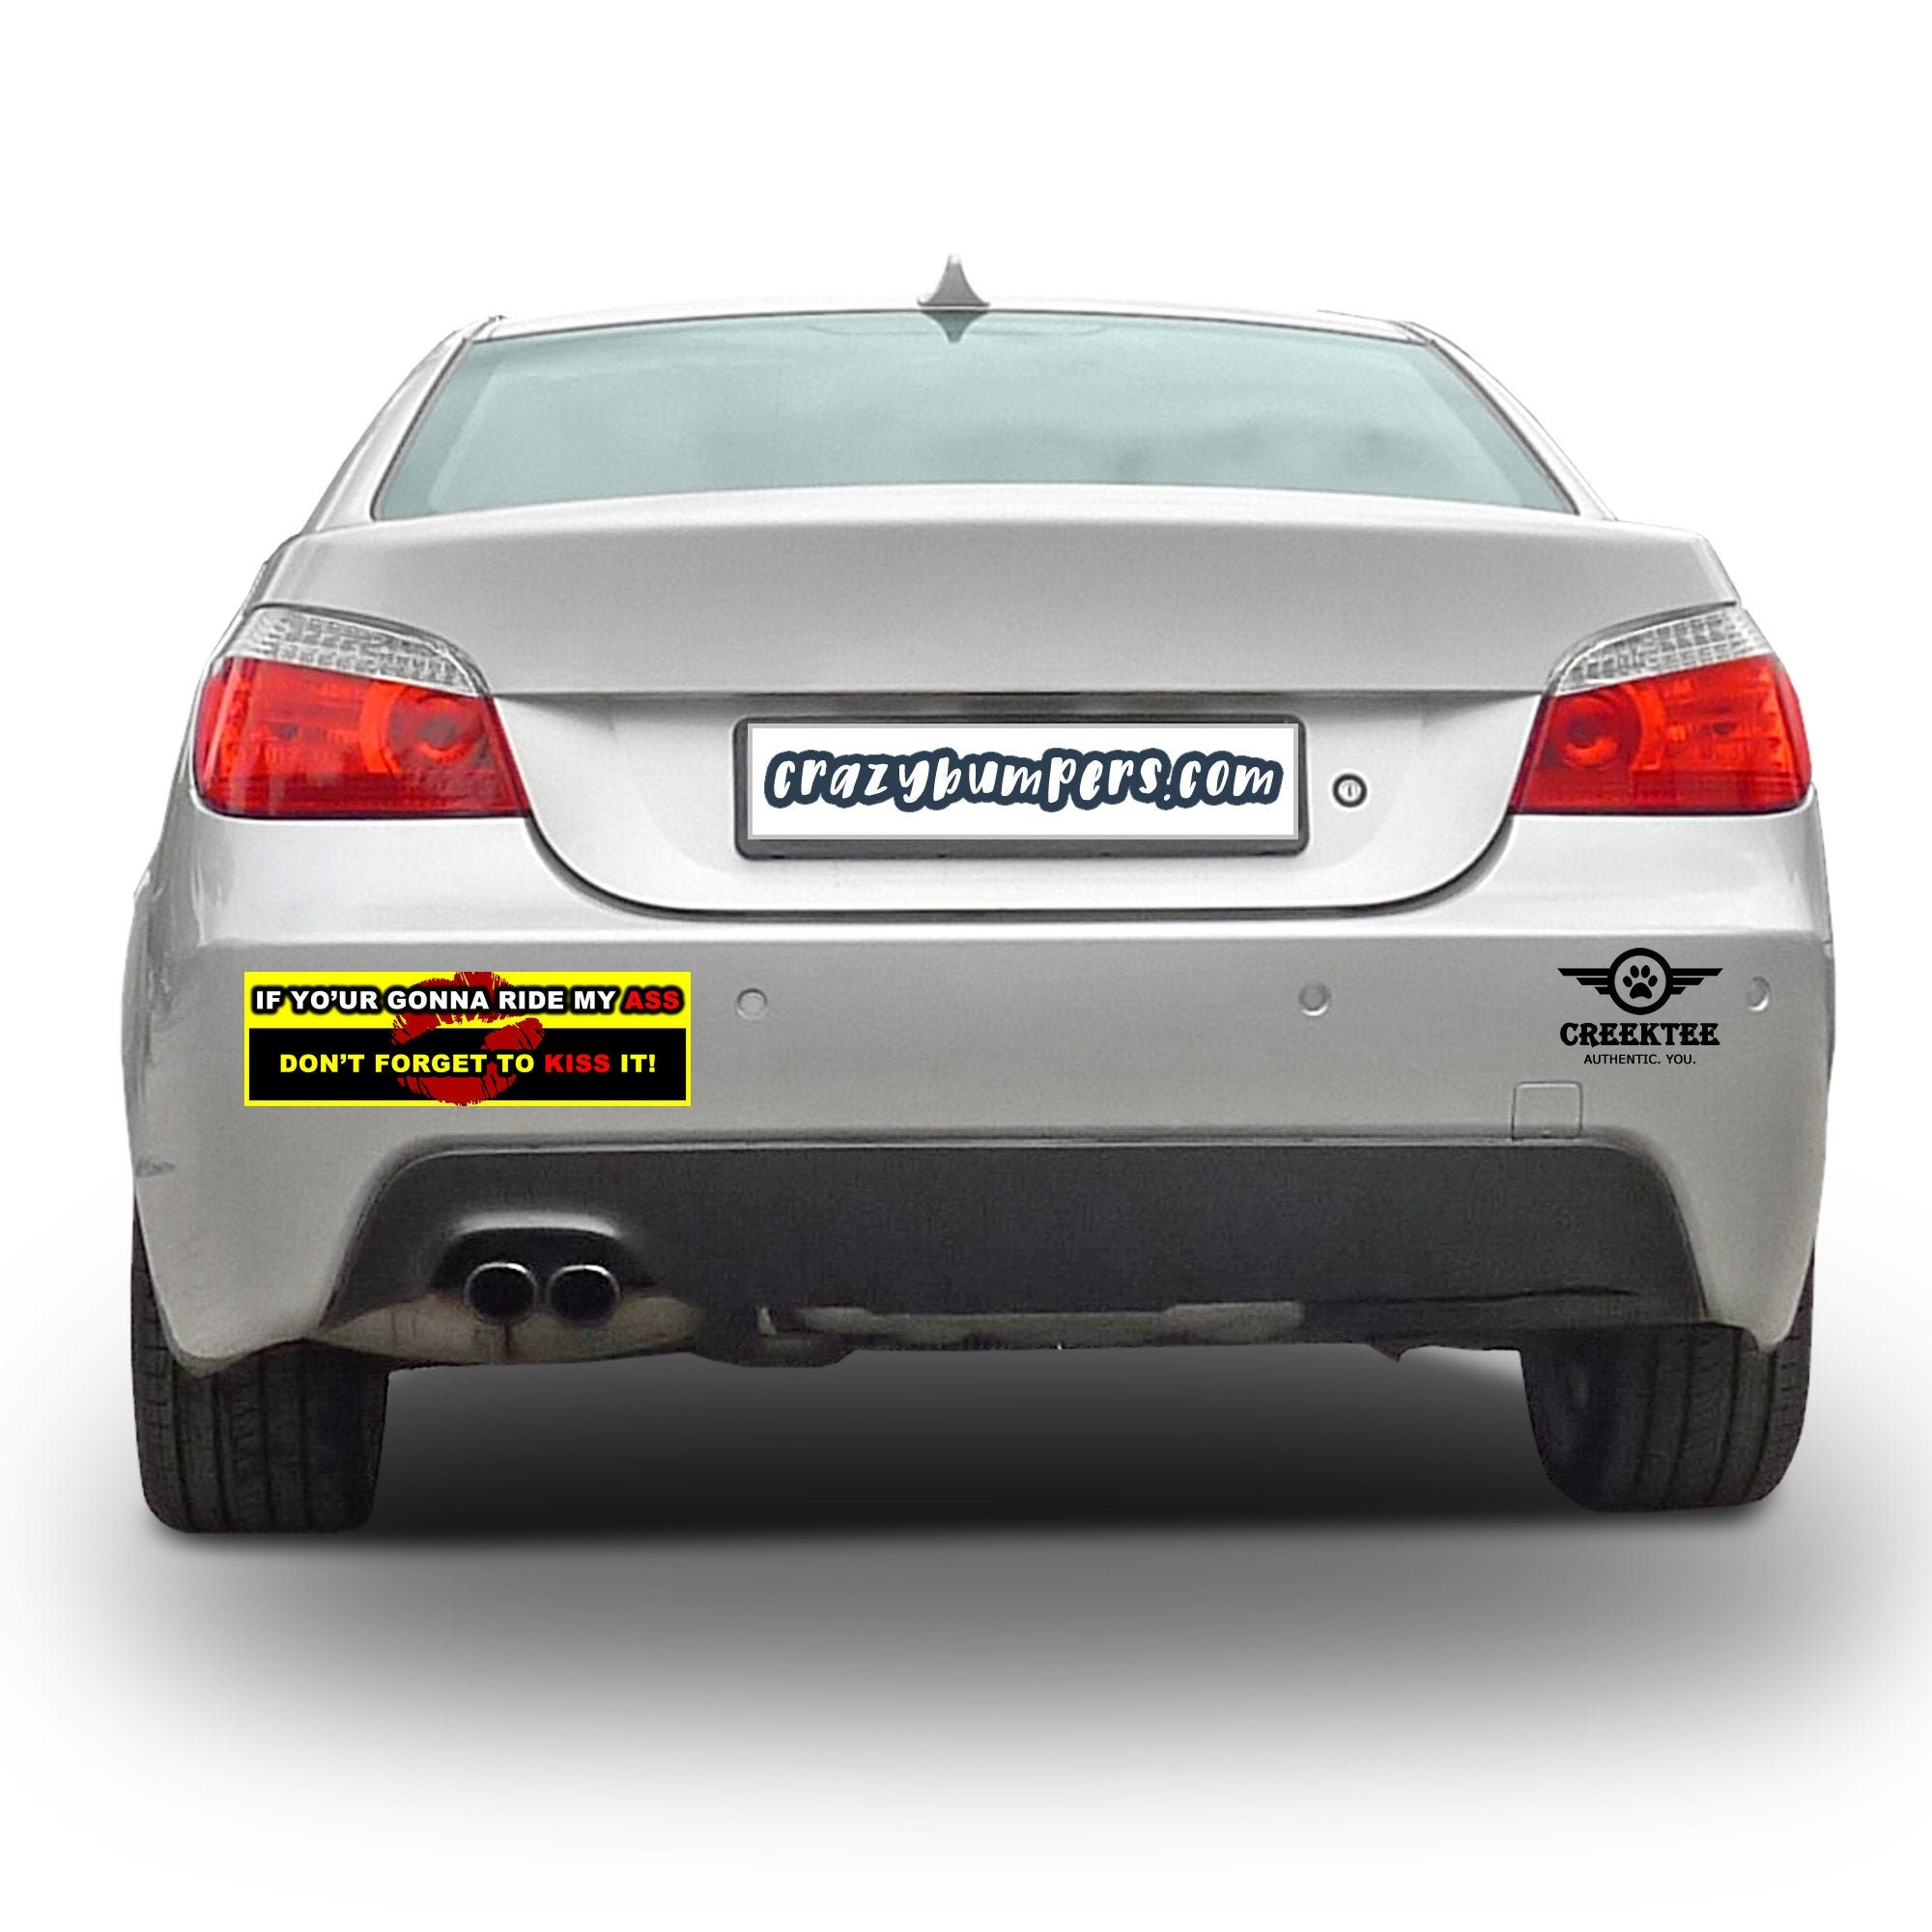 CAD$9.74 - If your going to ride my ass don't forget to kiss it! 10 x 3 Bumper Sticker - Custom changes and orders welcomed!